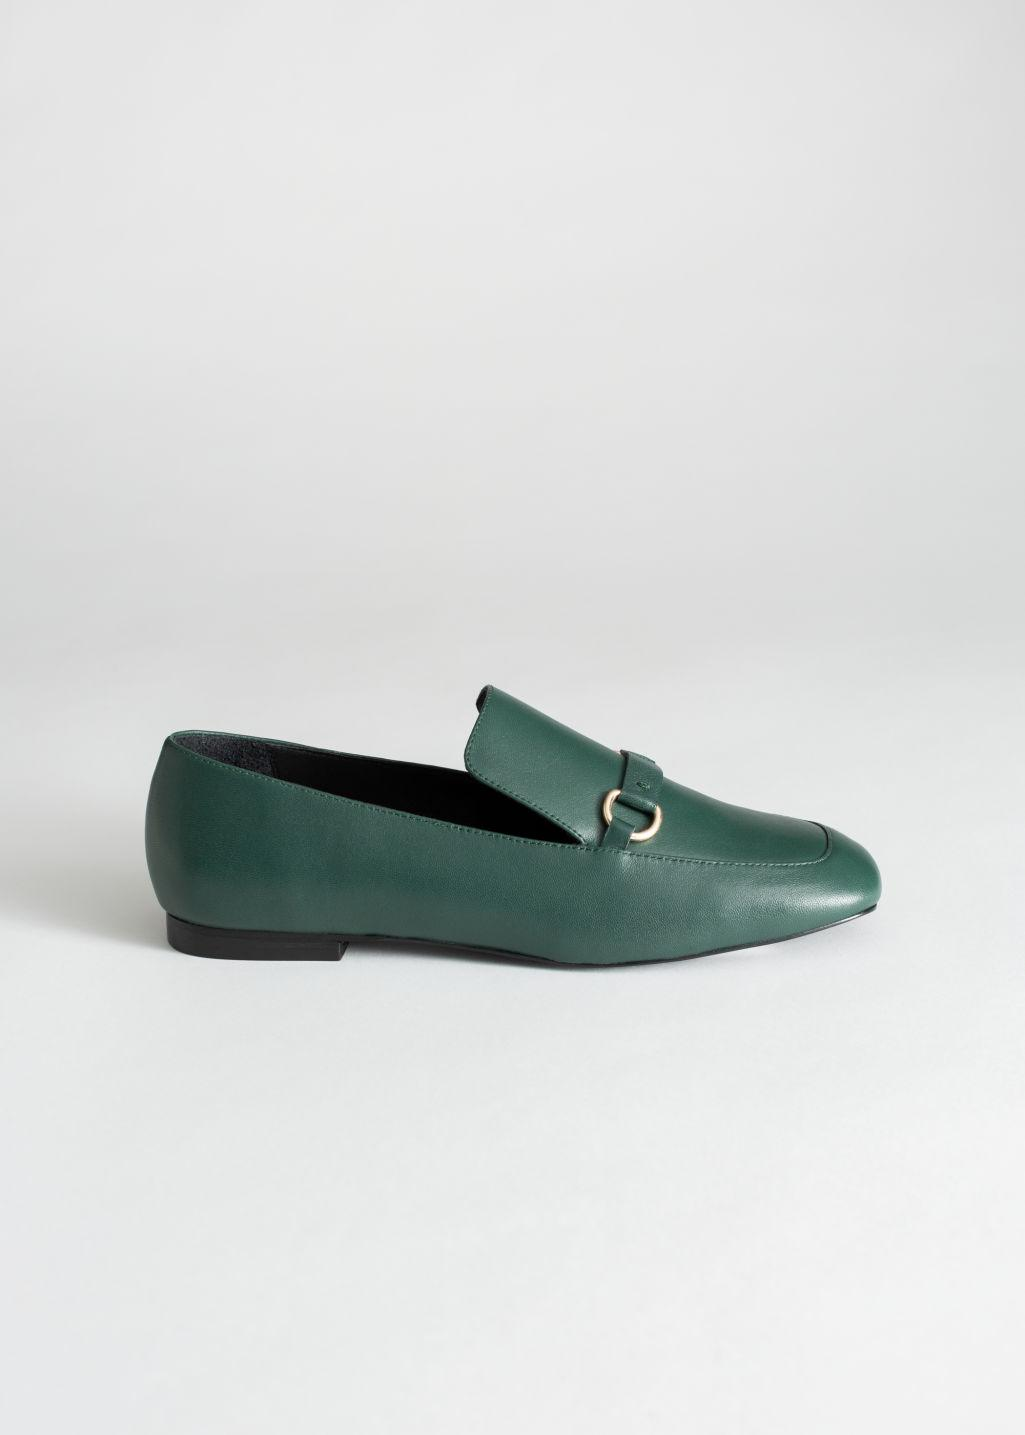 934d5244cb8   Other Stories Square Toe Equestrian Loafer in Green - Lyst